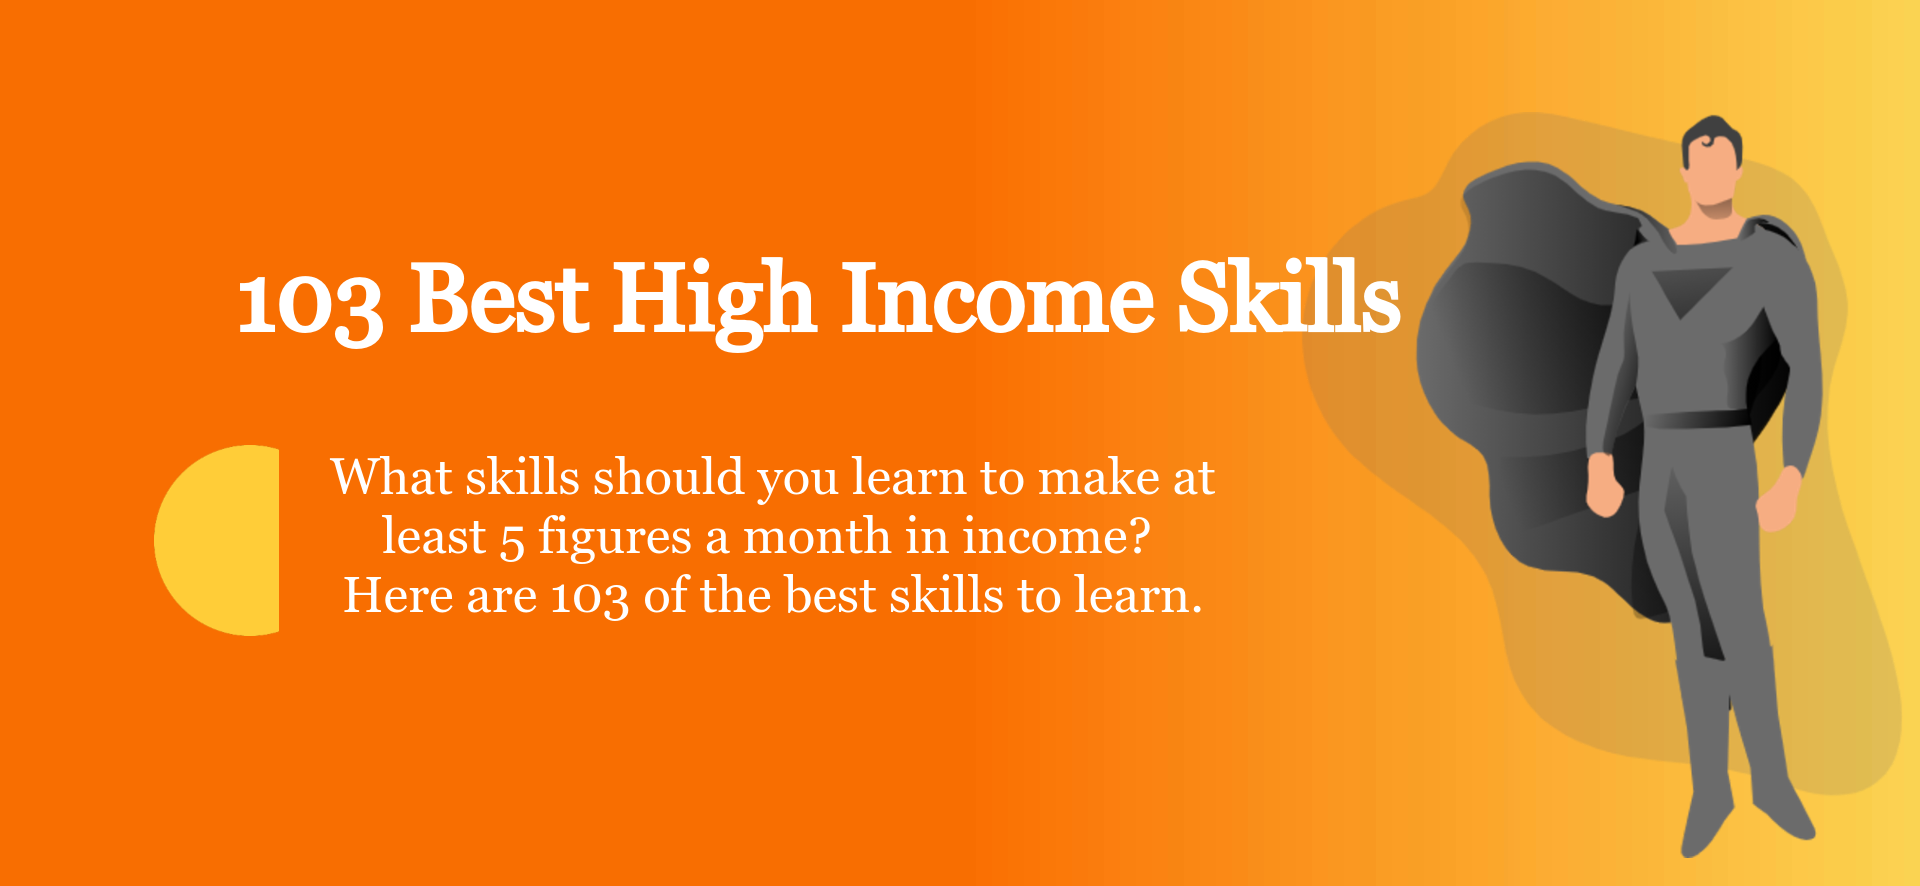 103 Best High Income Skills of 2021 (With Self-Taught Options)